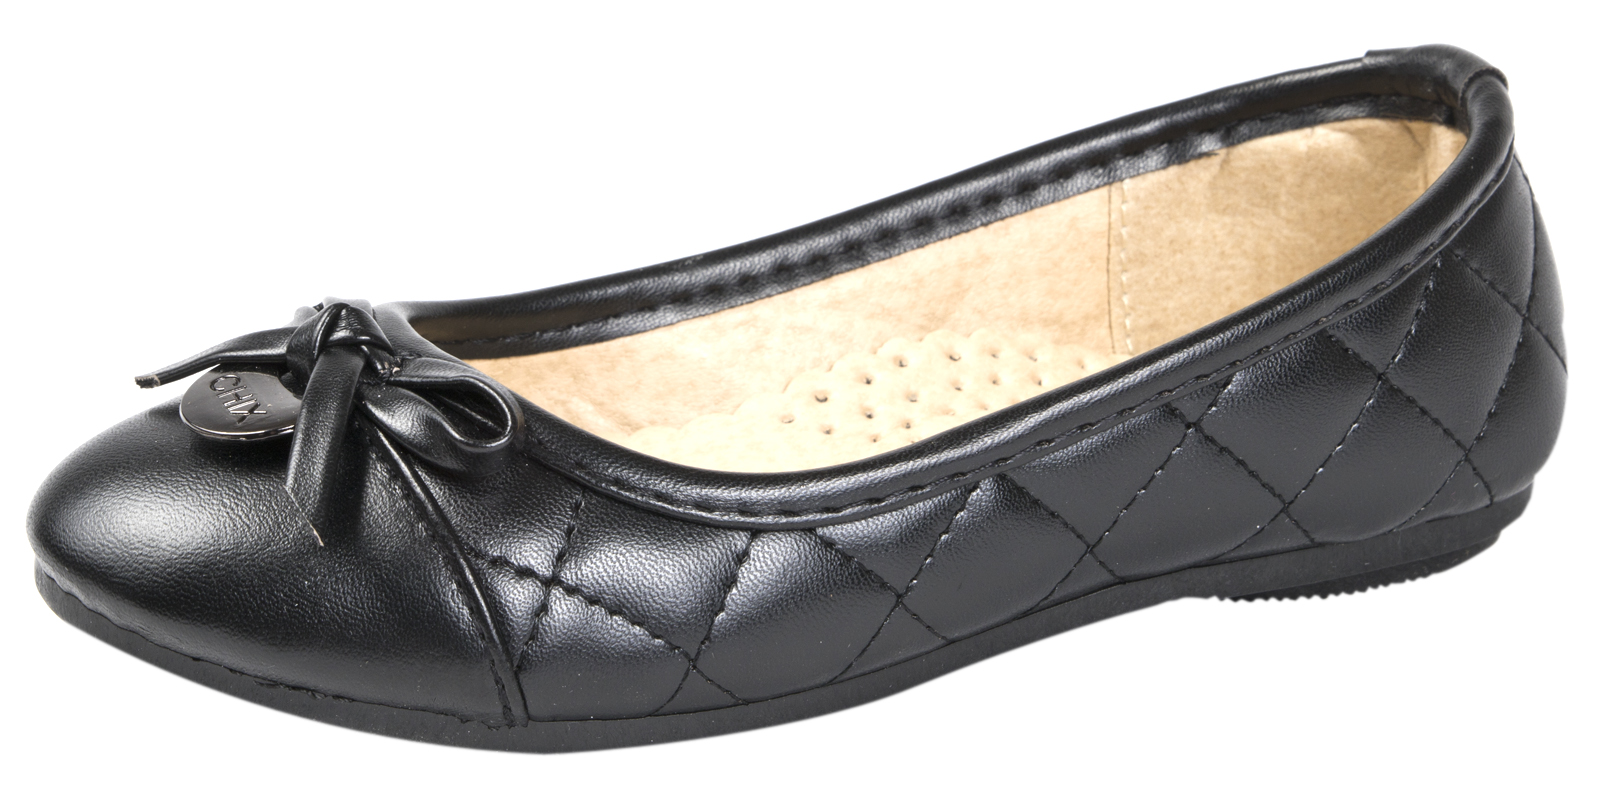 ef9d2c0d35c Ladies Girls Quilted Ballet Pumps Black Faux Leather Work School ...